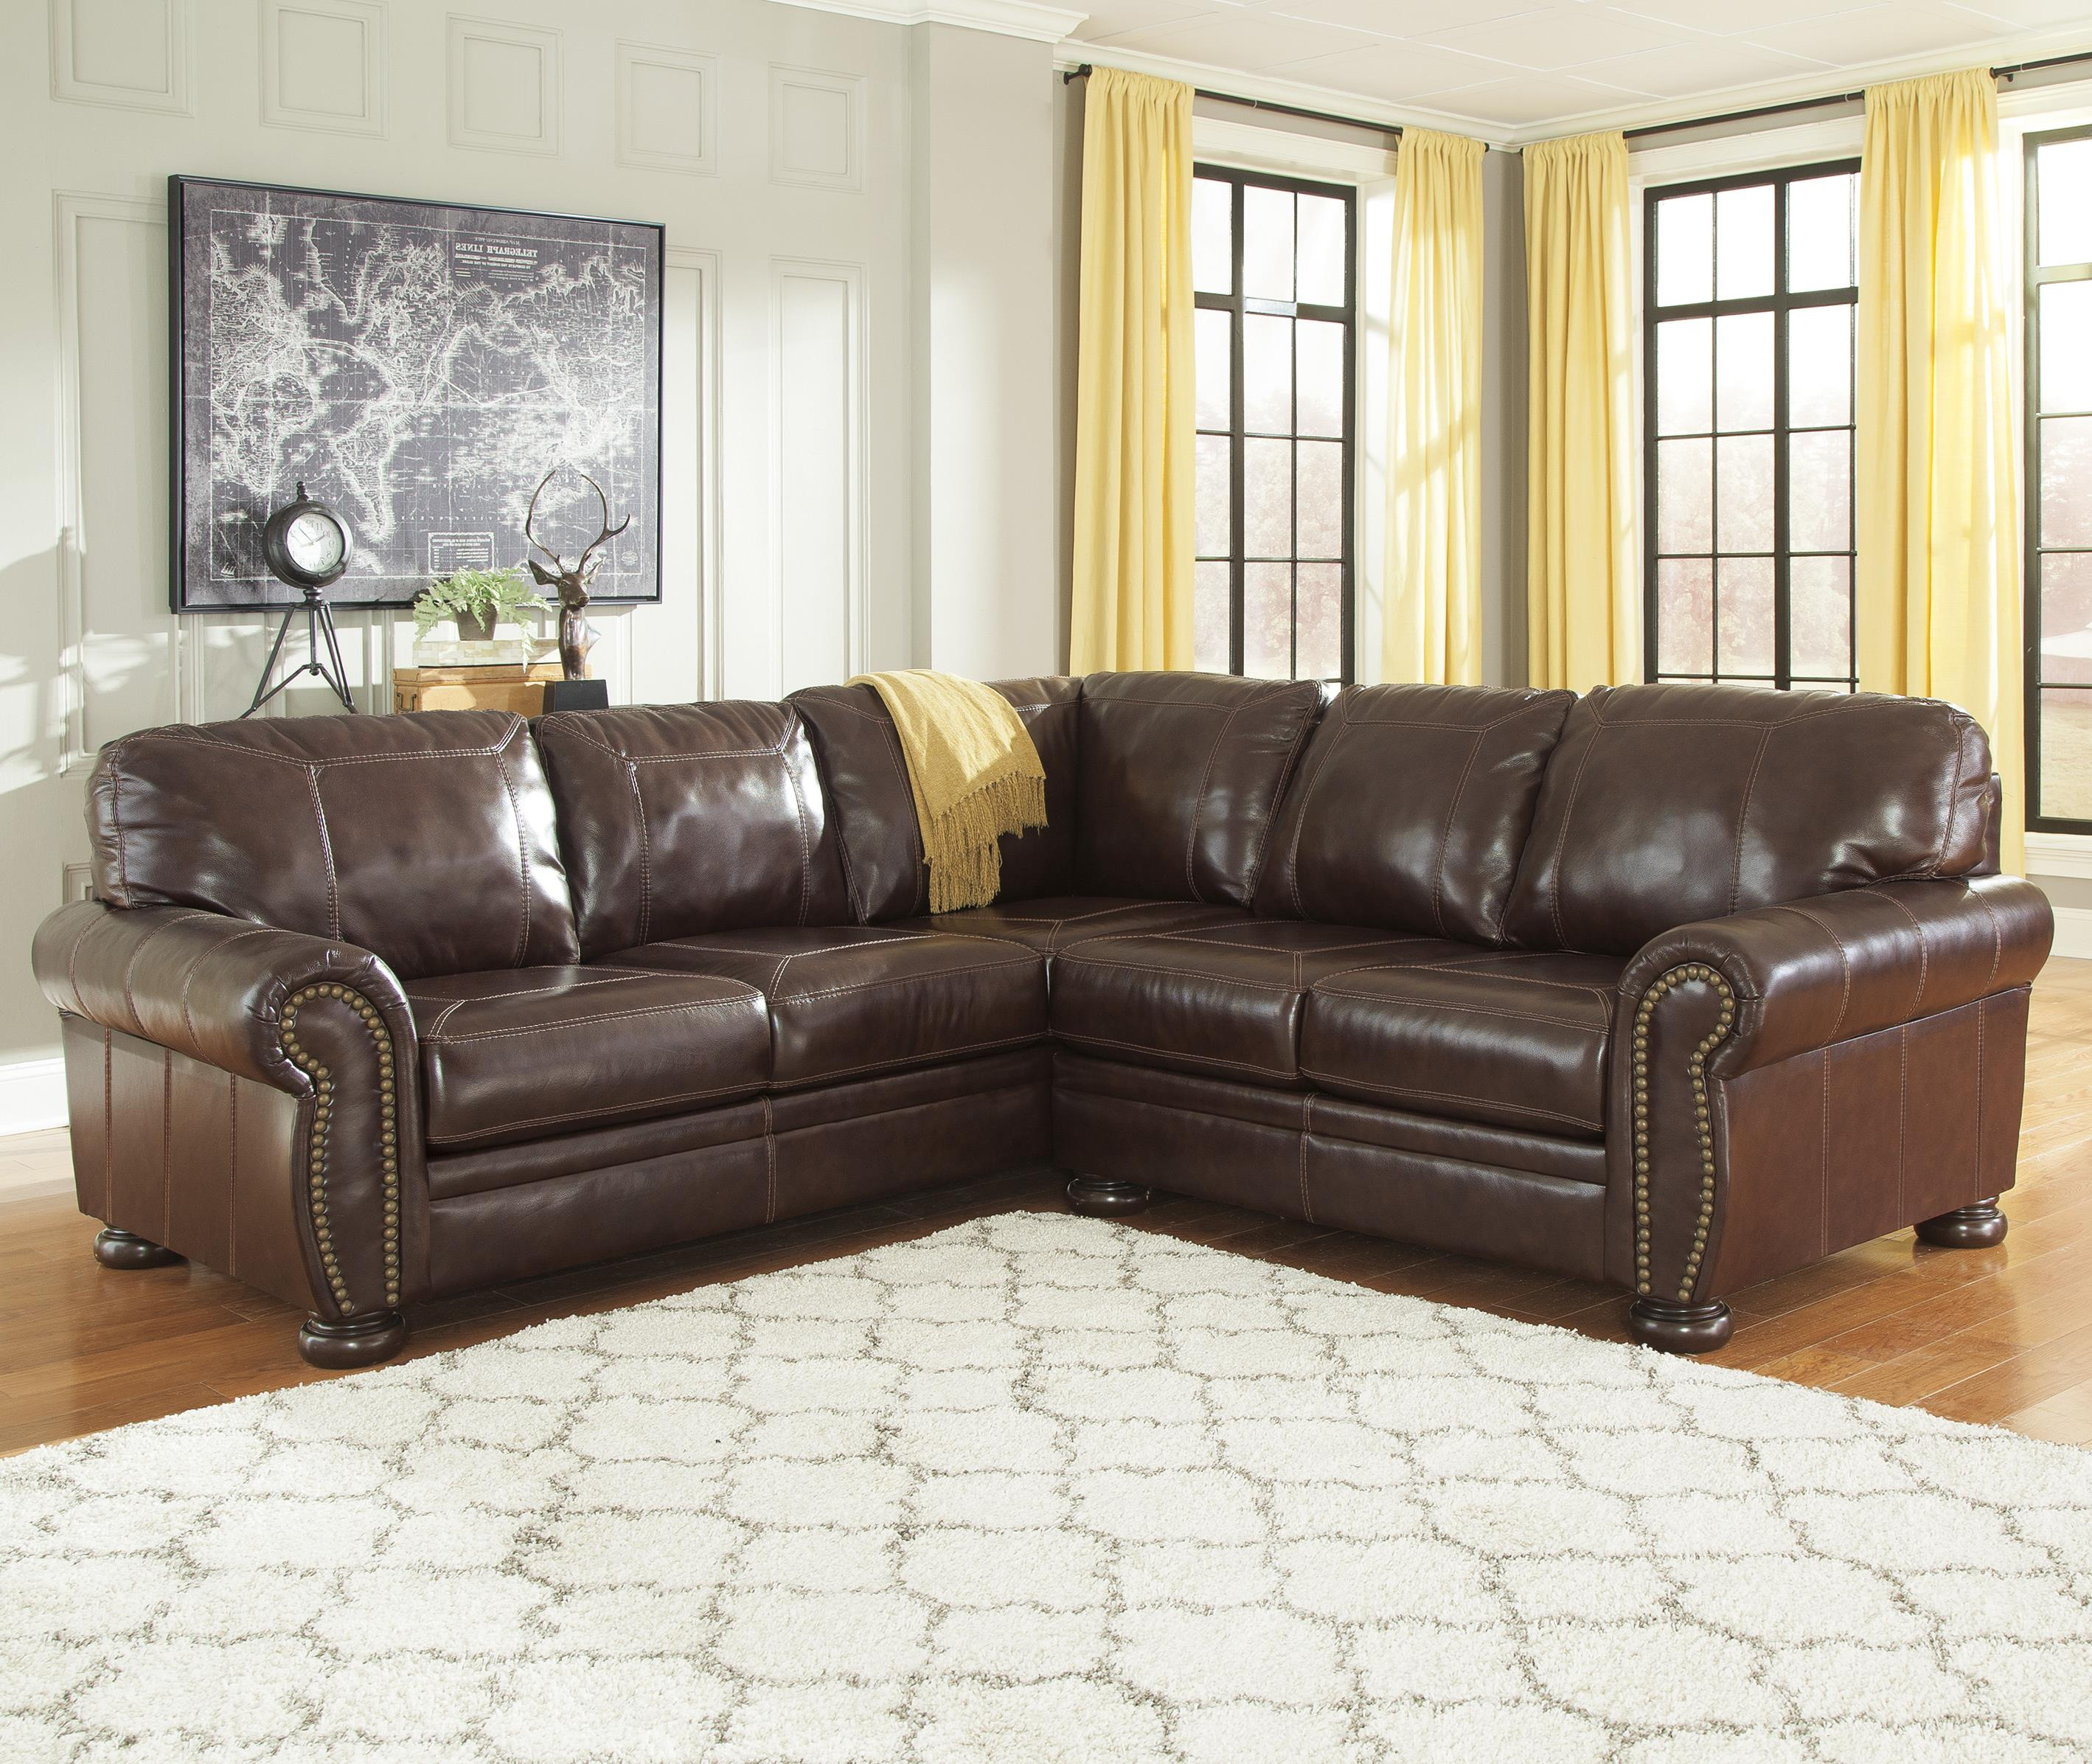 Signature Design by Ashley Banner 2-Piece Sectional - Item Number: 5040466+56